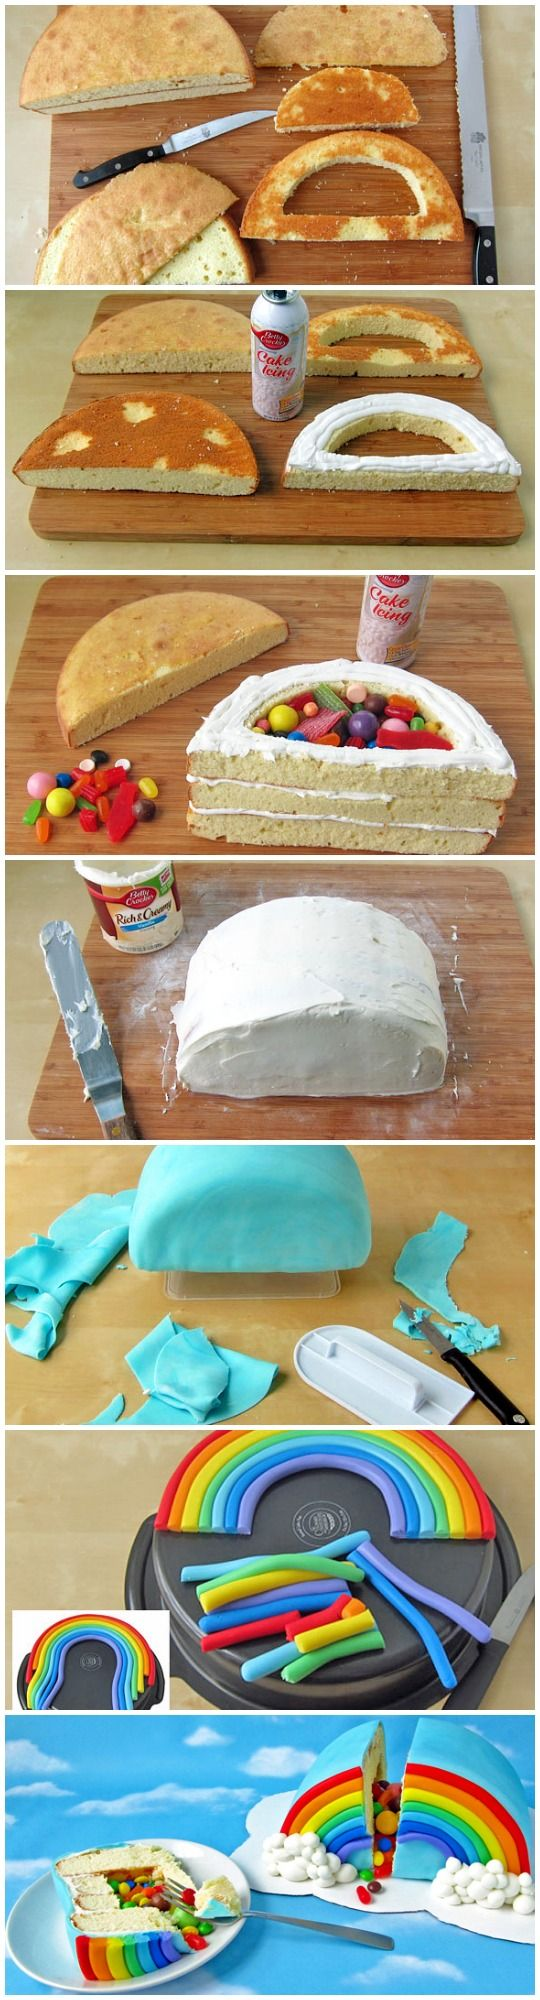 #Rainbow #Piñata #Cake from Rock Ur Party by Tablespoon.